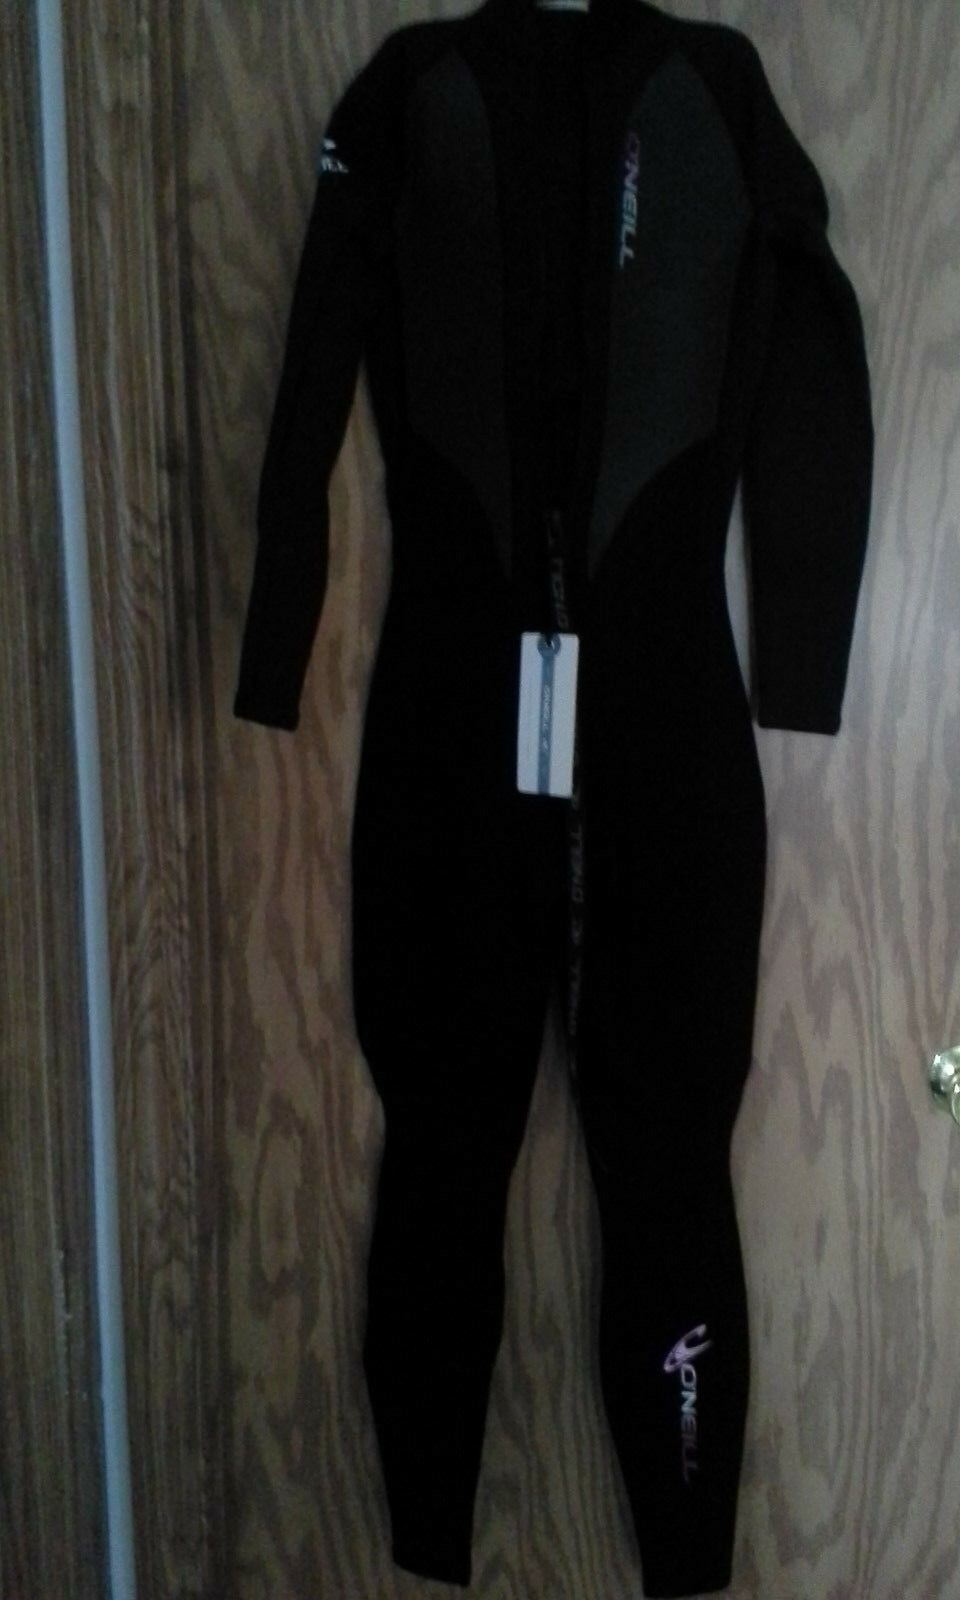 Women's O'Neill REACTOR 3 Full Wetsuit  FREE SHIPPING